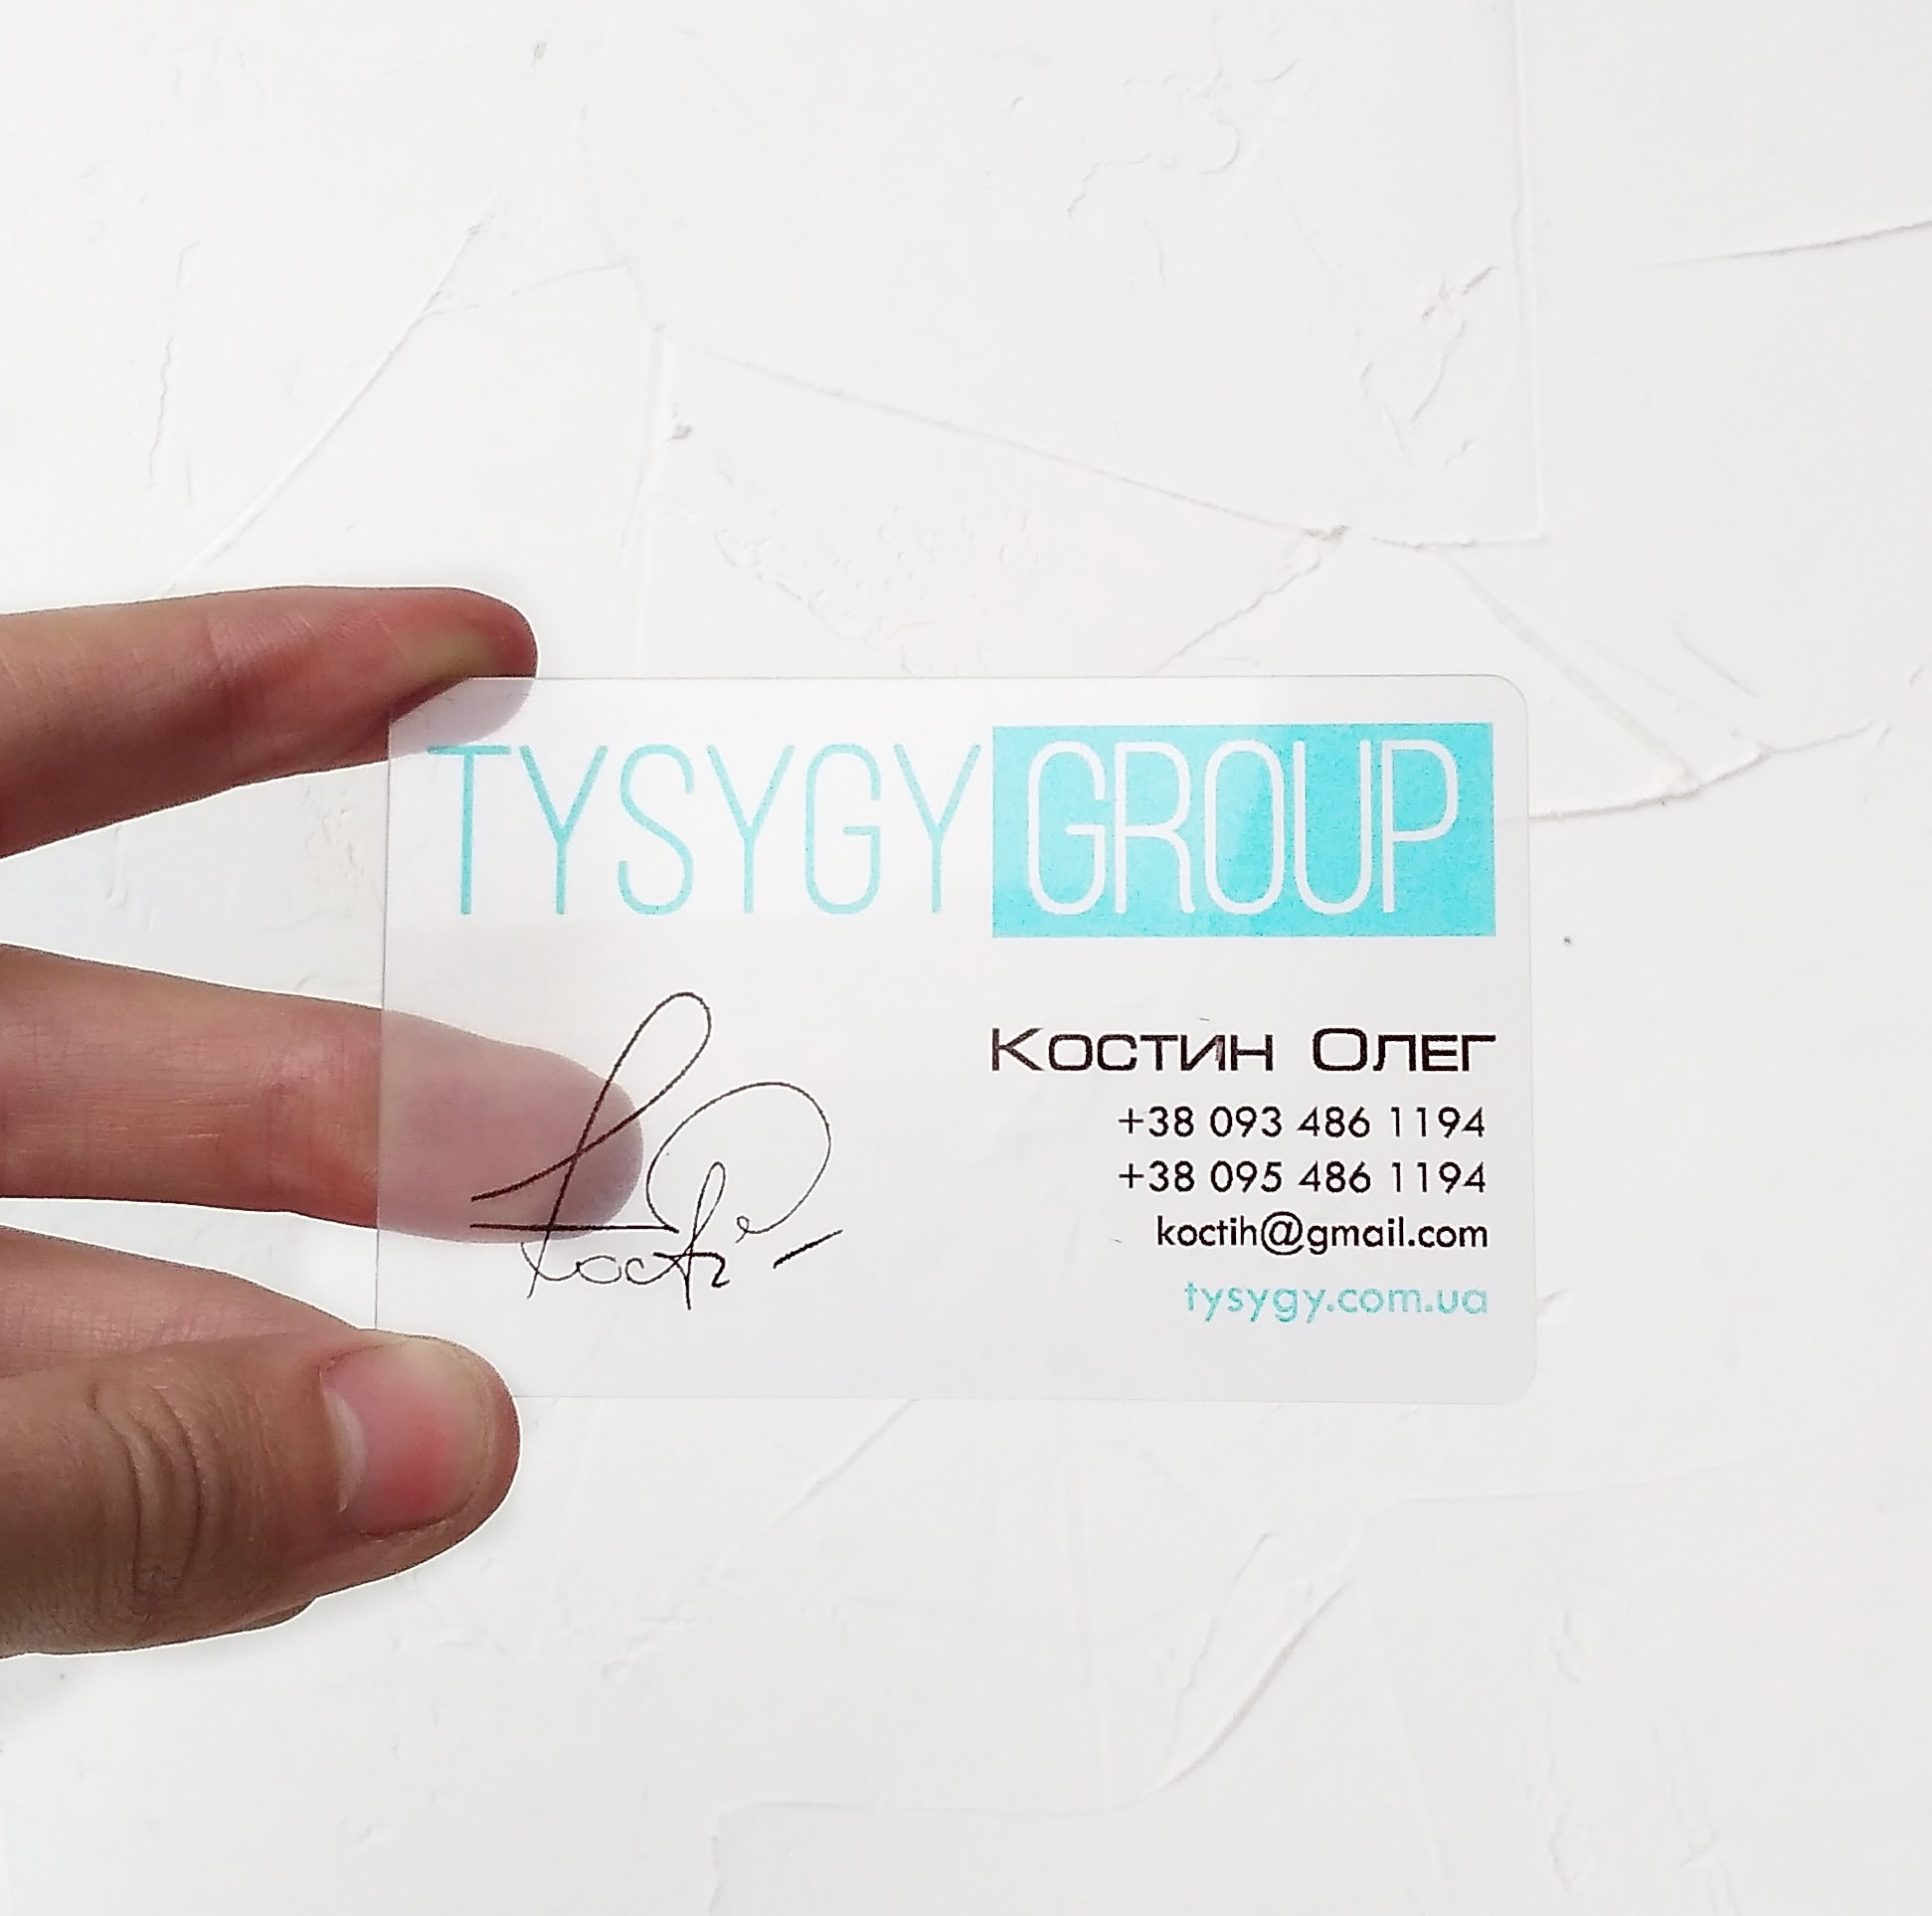 21 Transparent clear business cards, personalized card template, premade  logo branding design, frosted PVC plastic, calligraphy calling tag Inside Transparent Business Cards Template